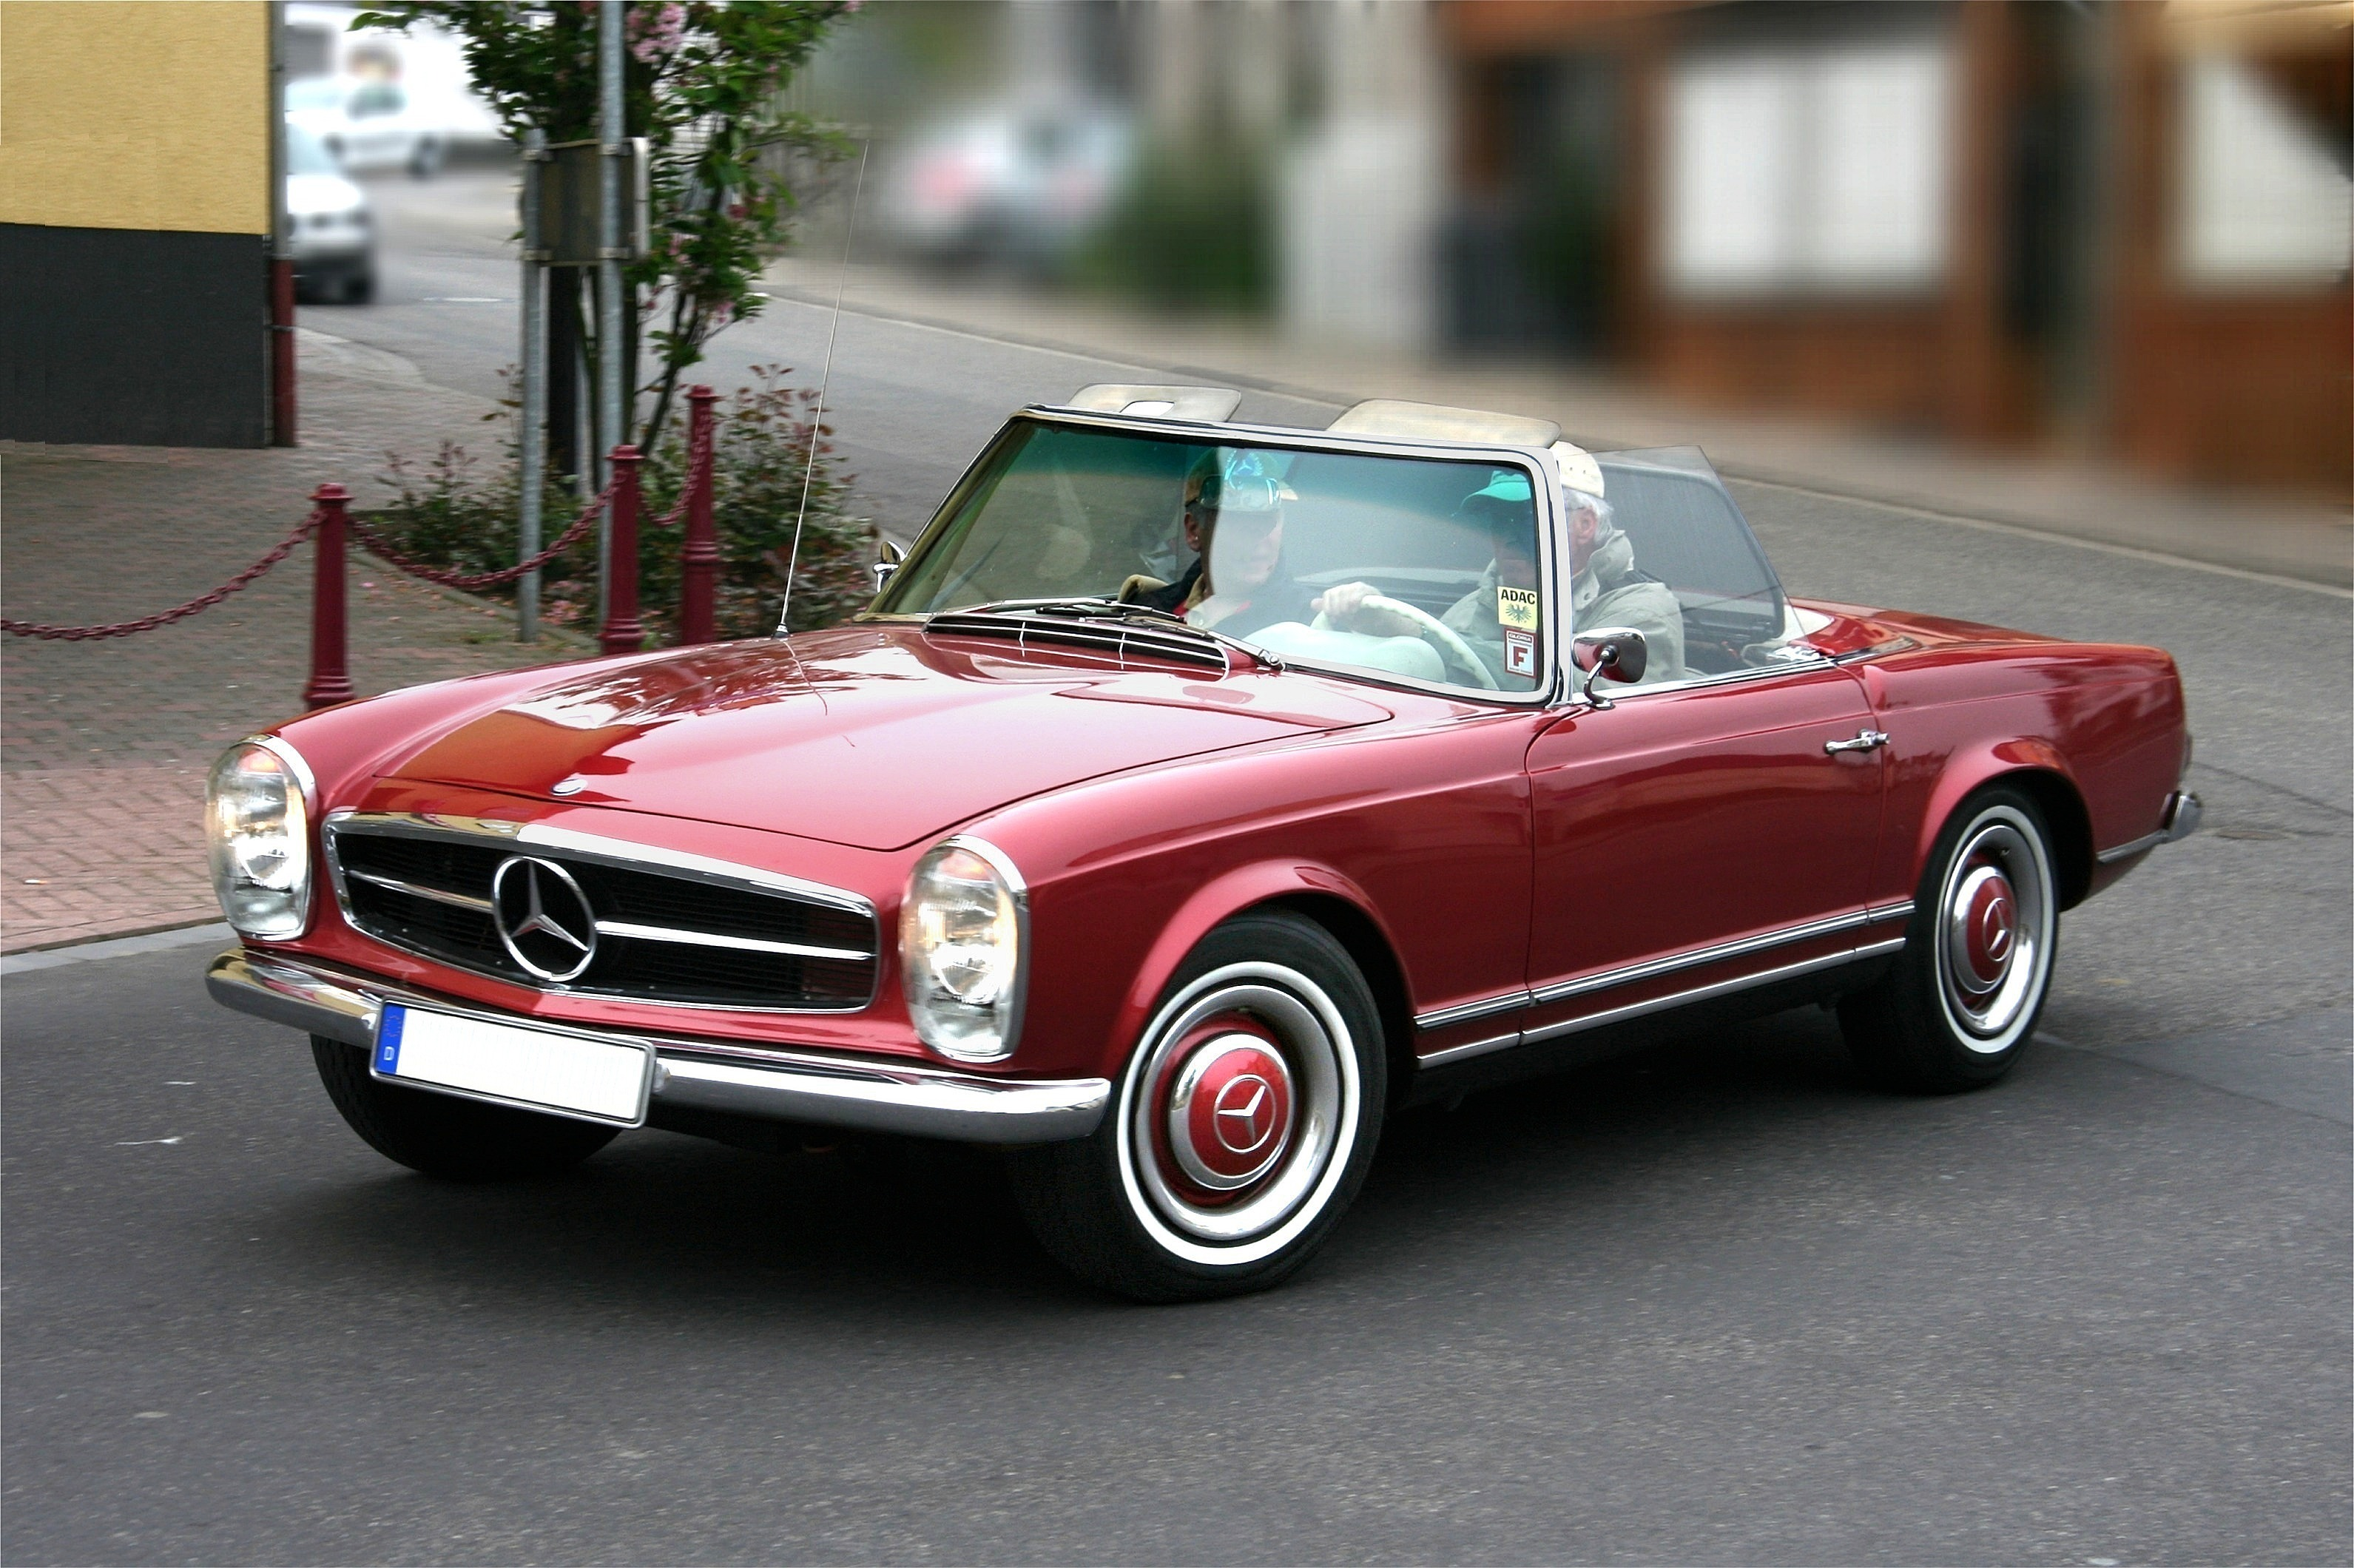 Now You Can Road Trip The Mediterranean Coast in Your Dream Classic Mercedes-Benz